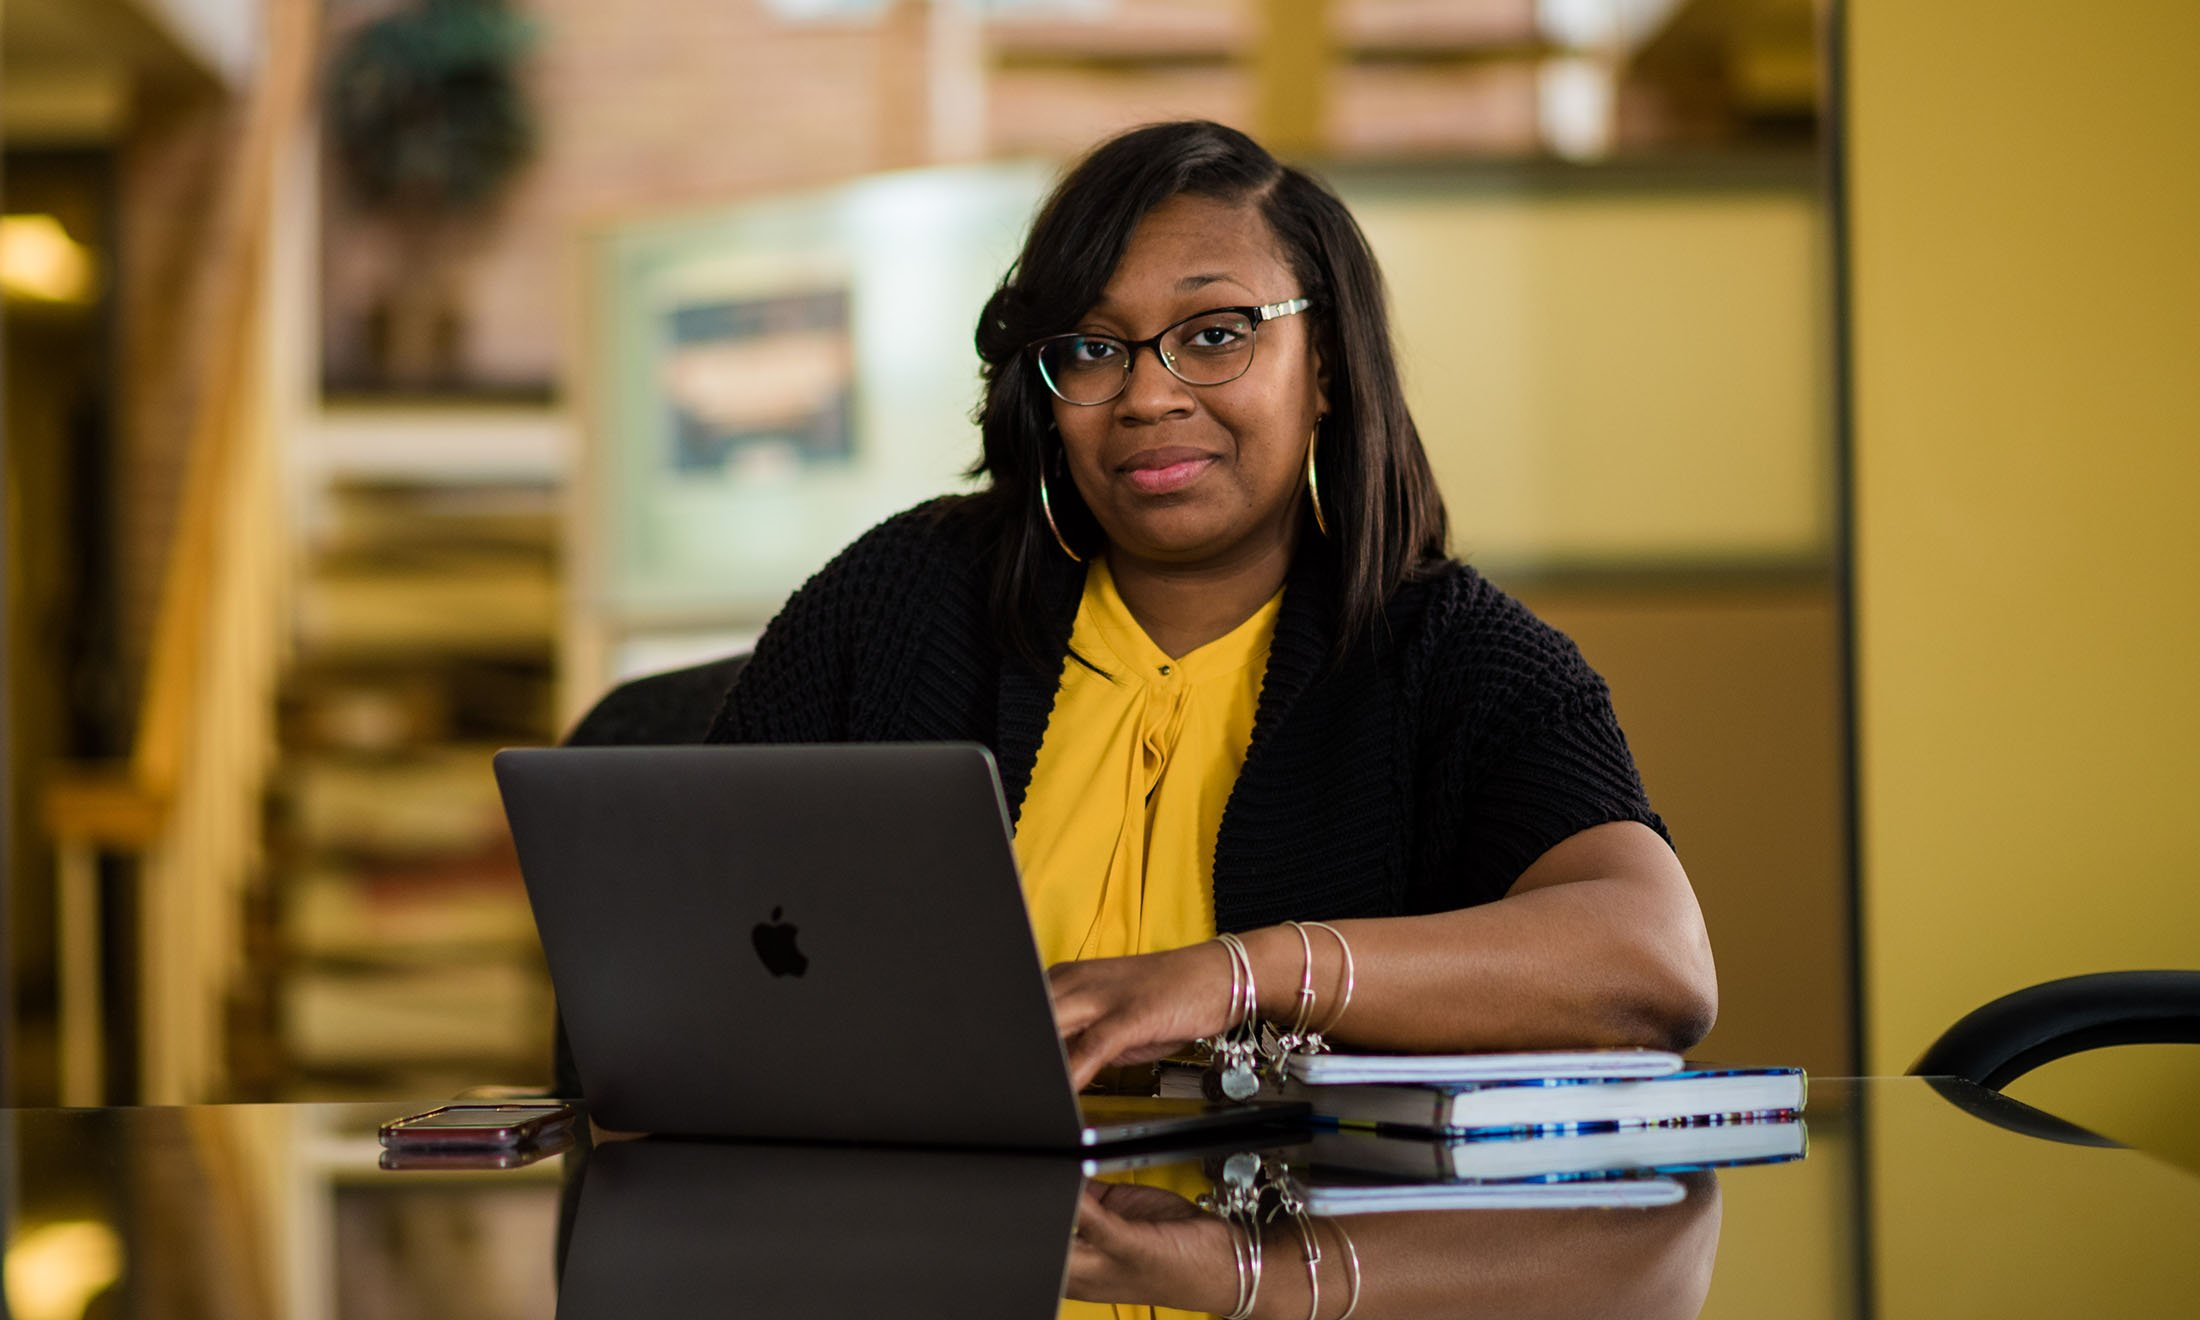 Nakisha Scruggs sits at a table on her laptop